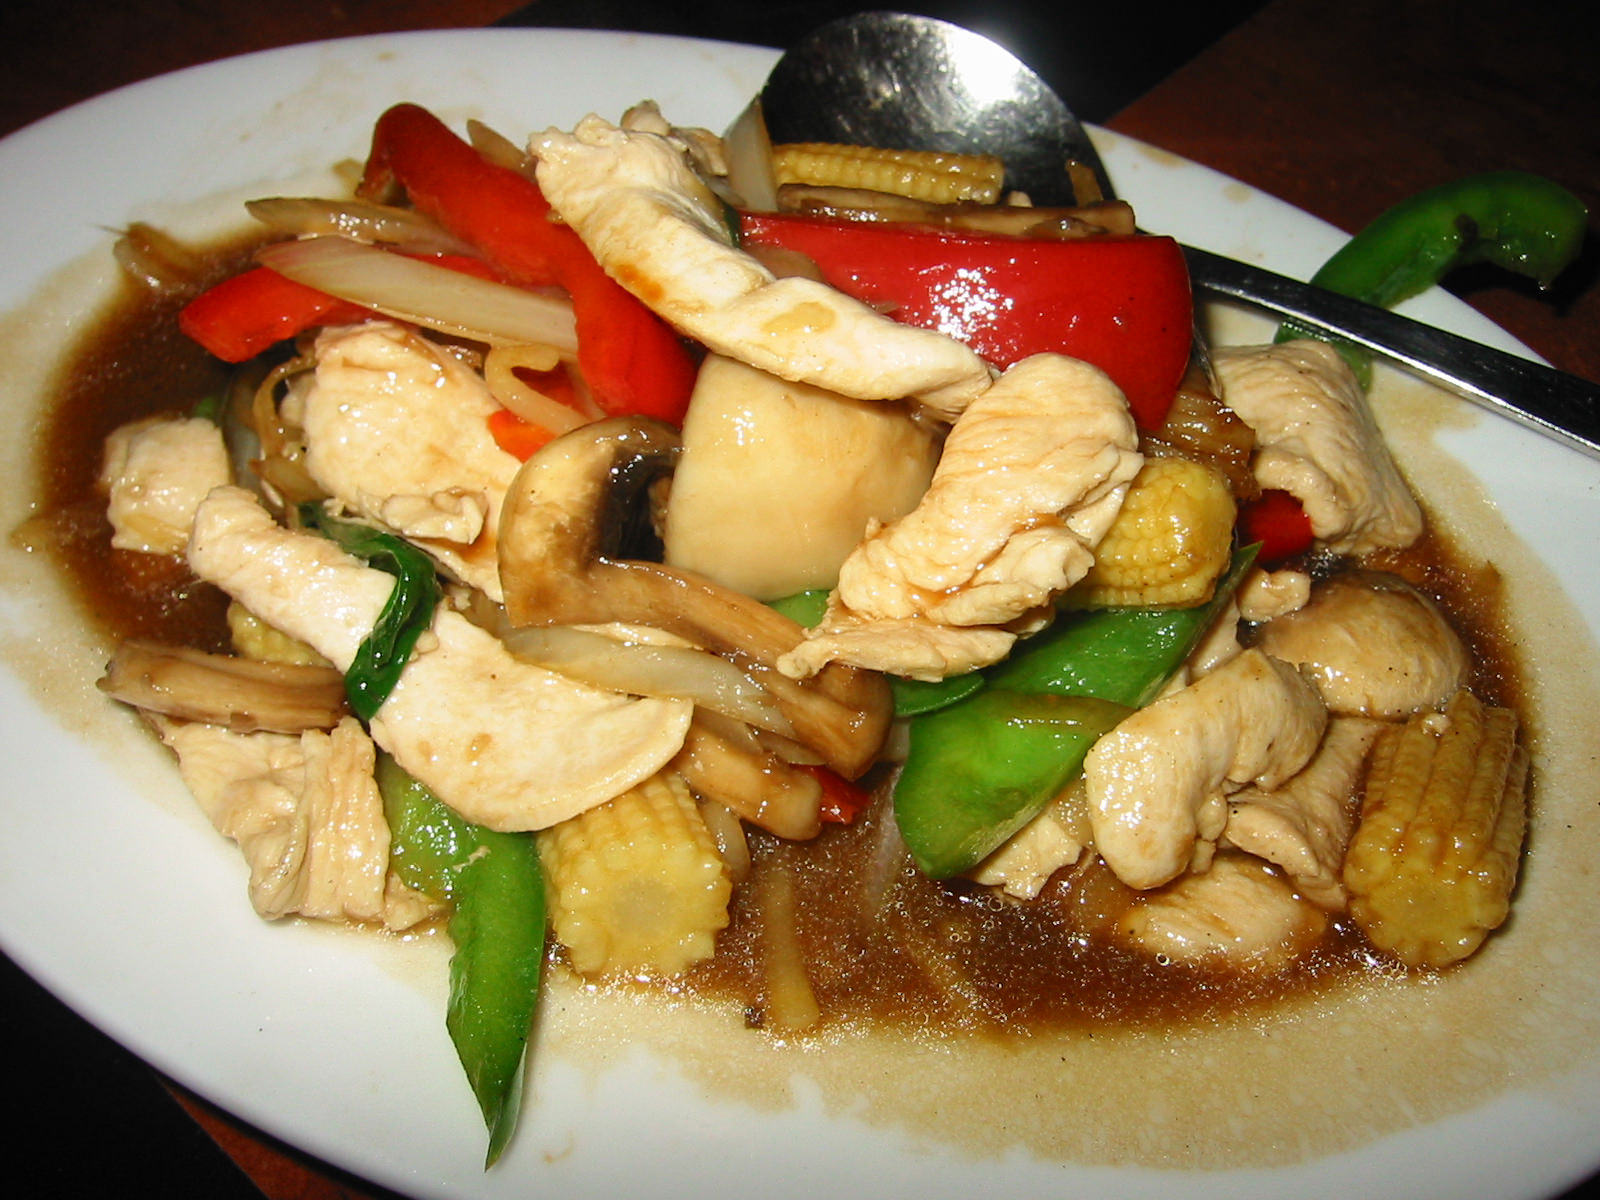 Phat khing with chicken